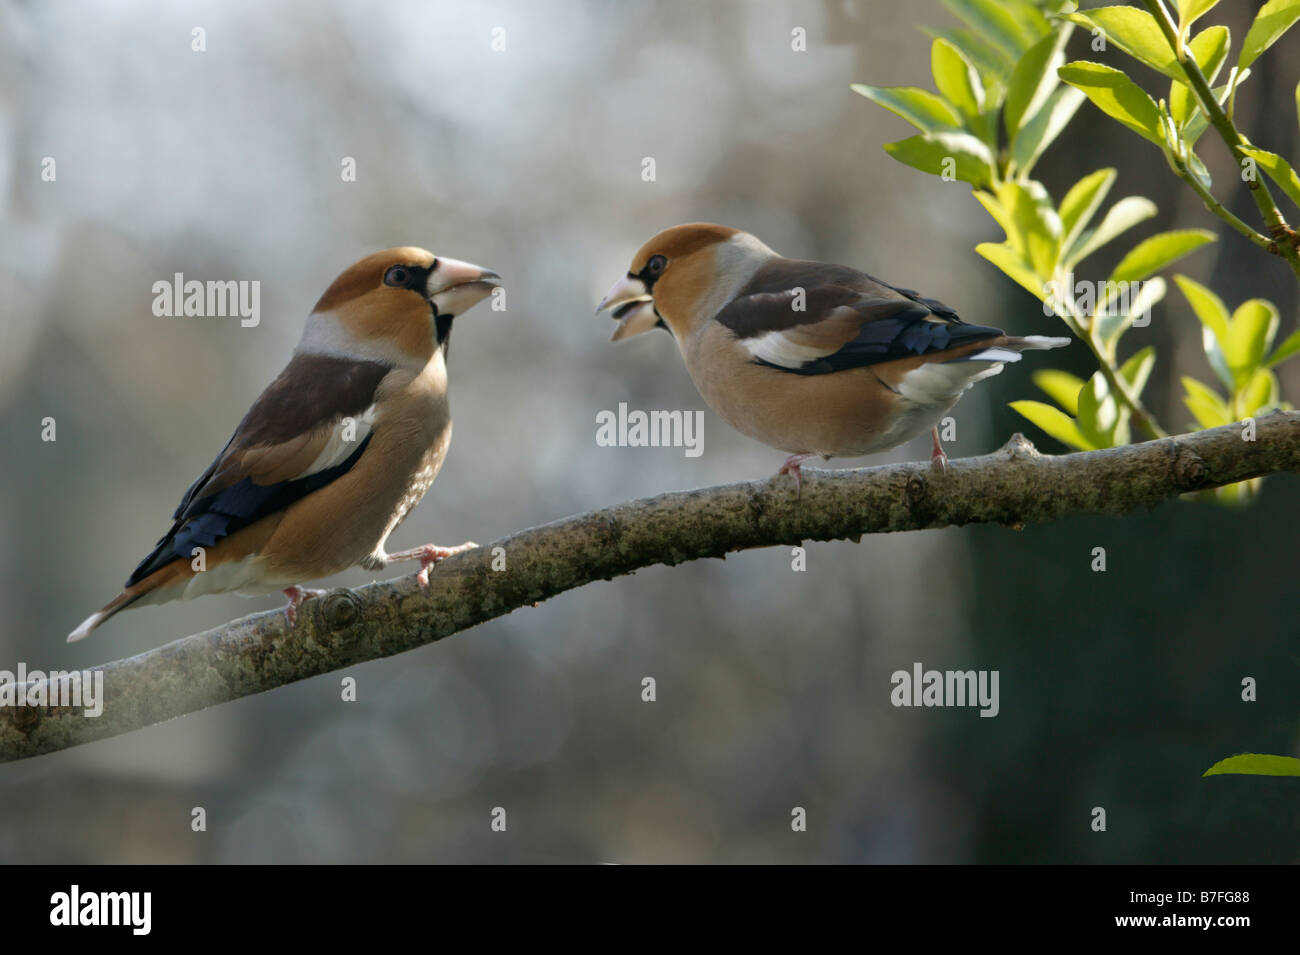 gros bec Kernbeisser Hawfinch Coccothraustes coccothraustes perched on a twig in winter animals Aves birds Europa - Stock Image